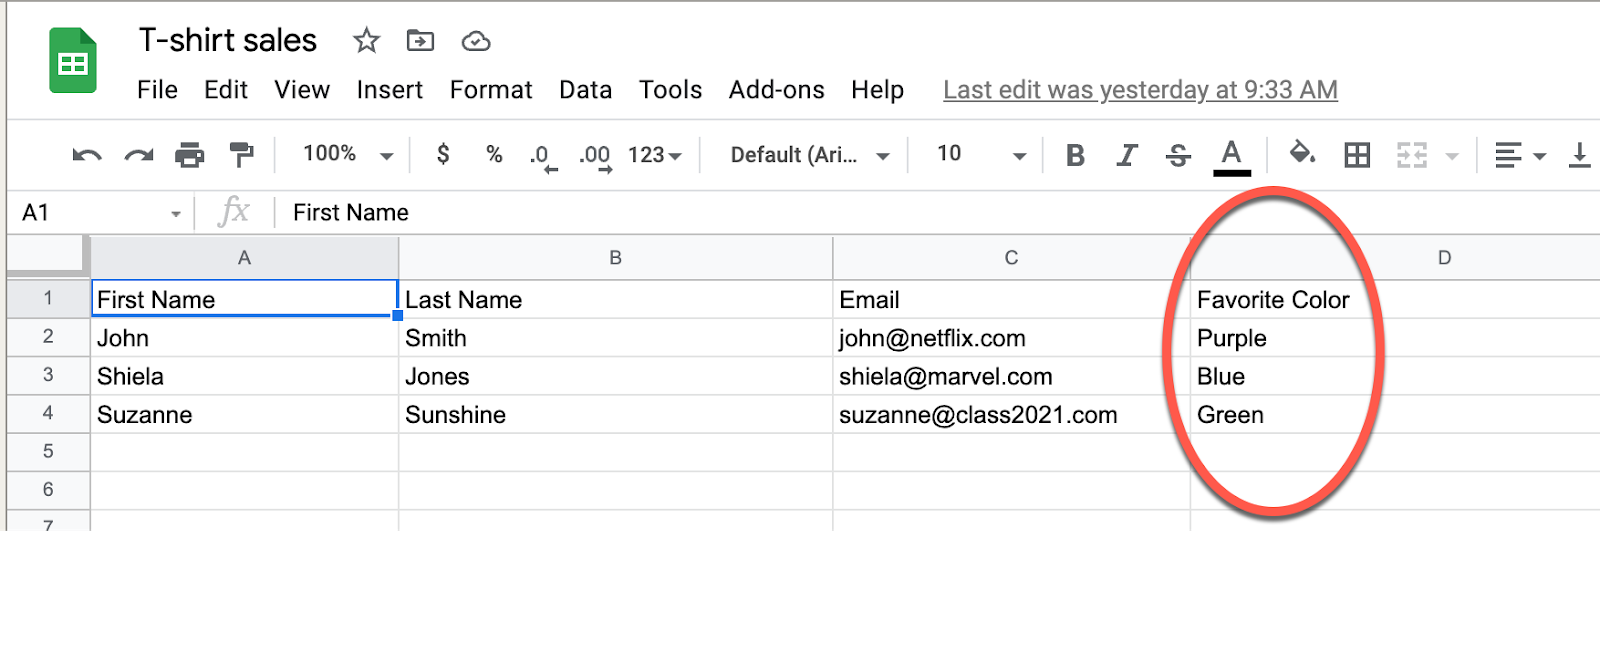 Add a column to your Connect 365 Email Outreach spreadsheet for custom field data